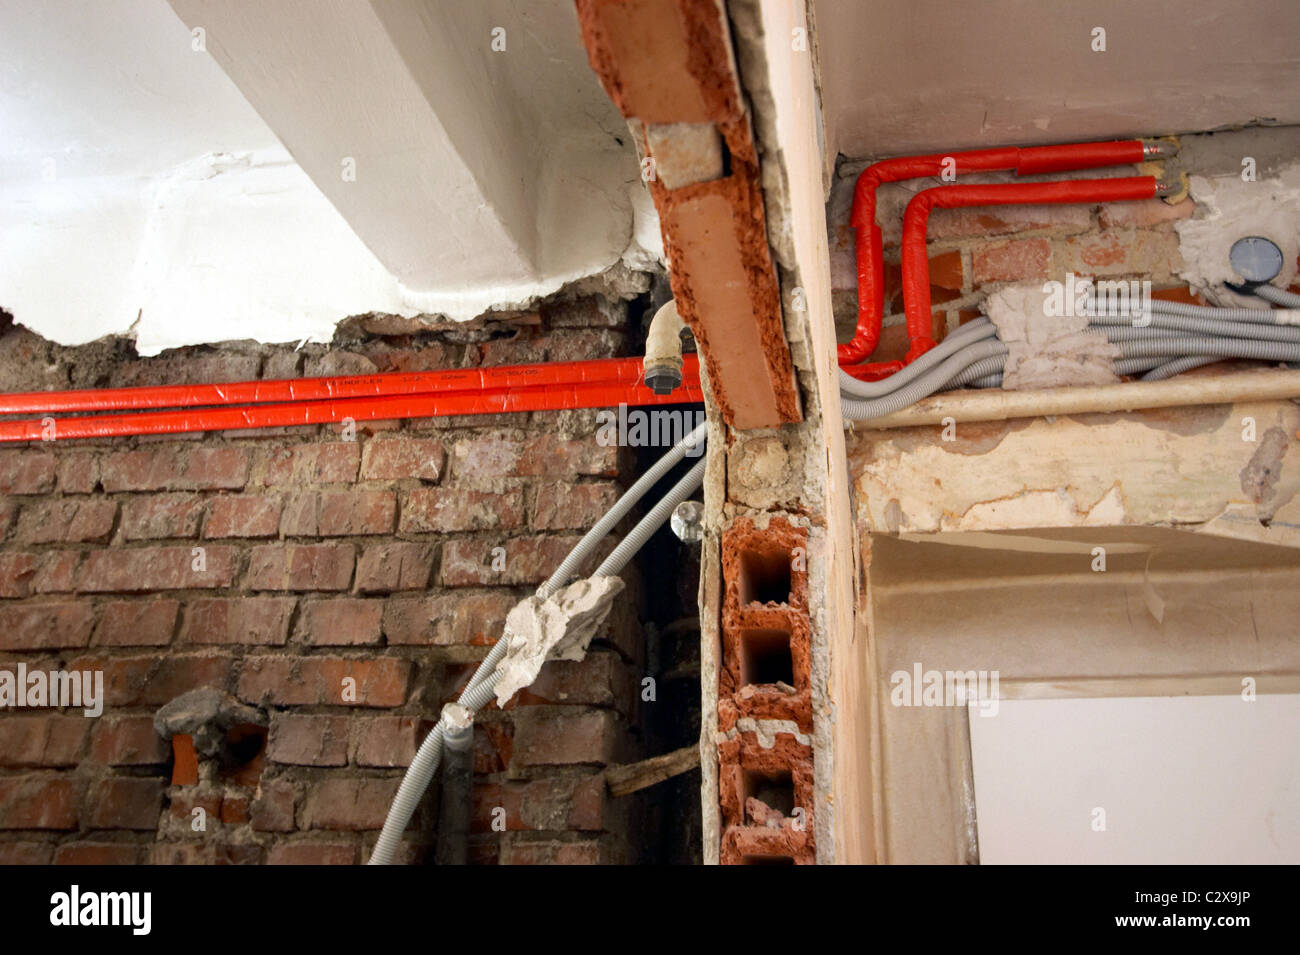 Renovation work in an old apartment Stock Photo: 36228382 - Alamy